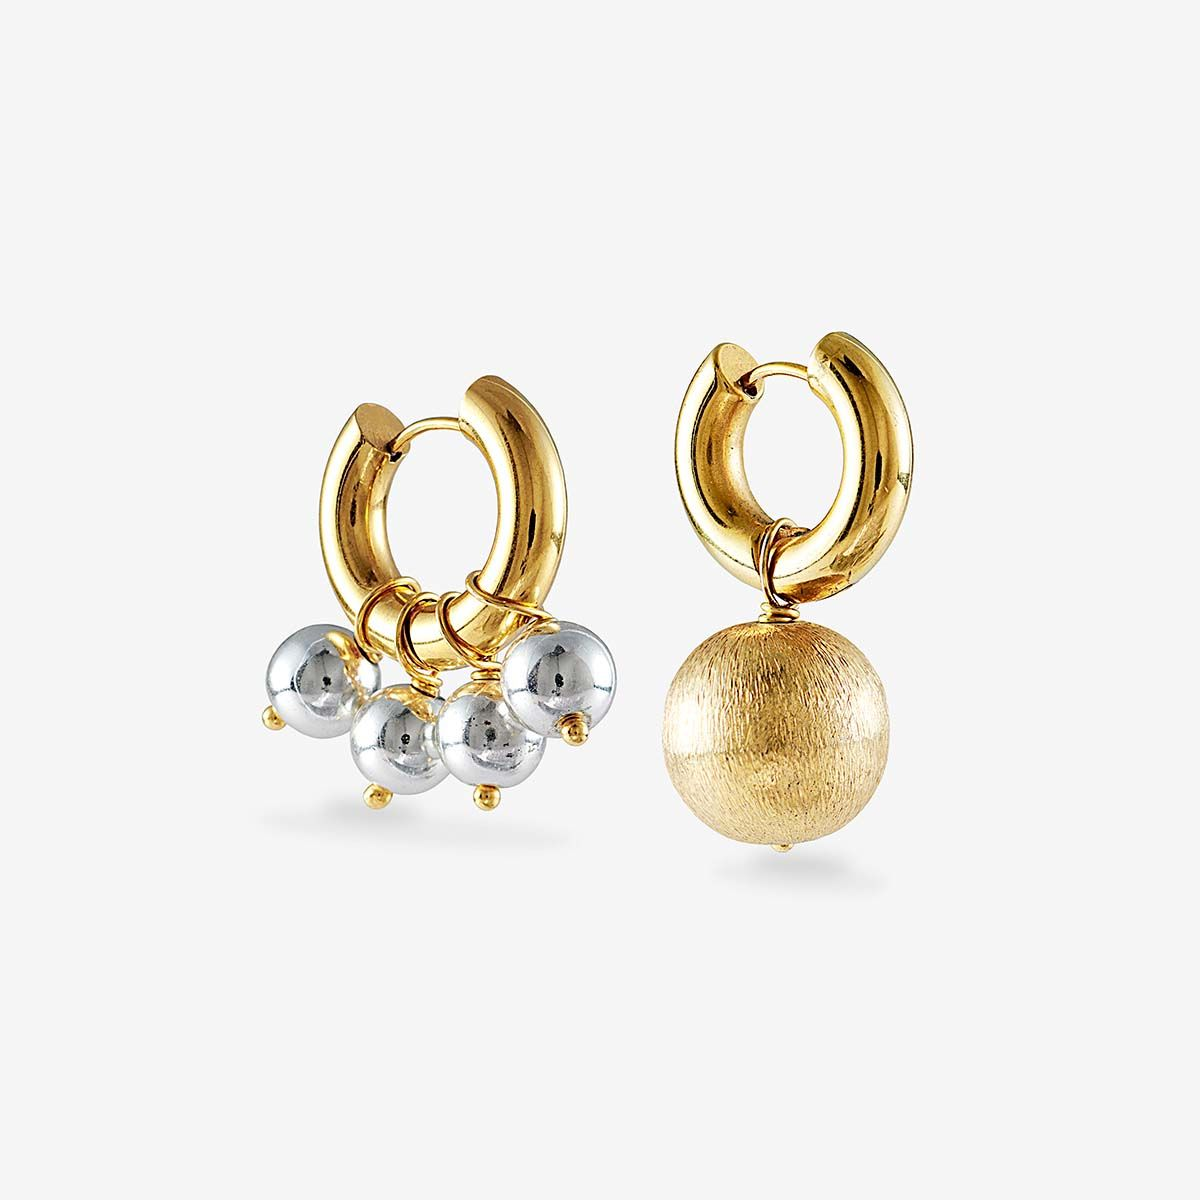 Mismatched silver and gold earrings - Creolen - 24k vergoldet